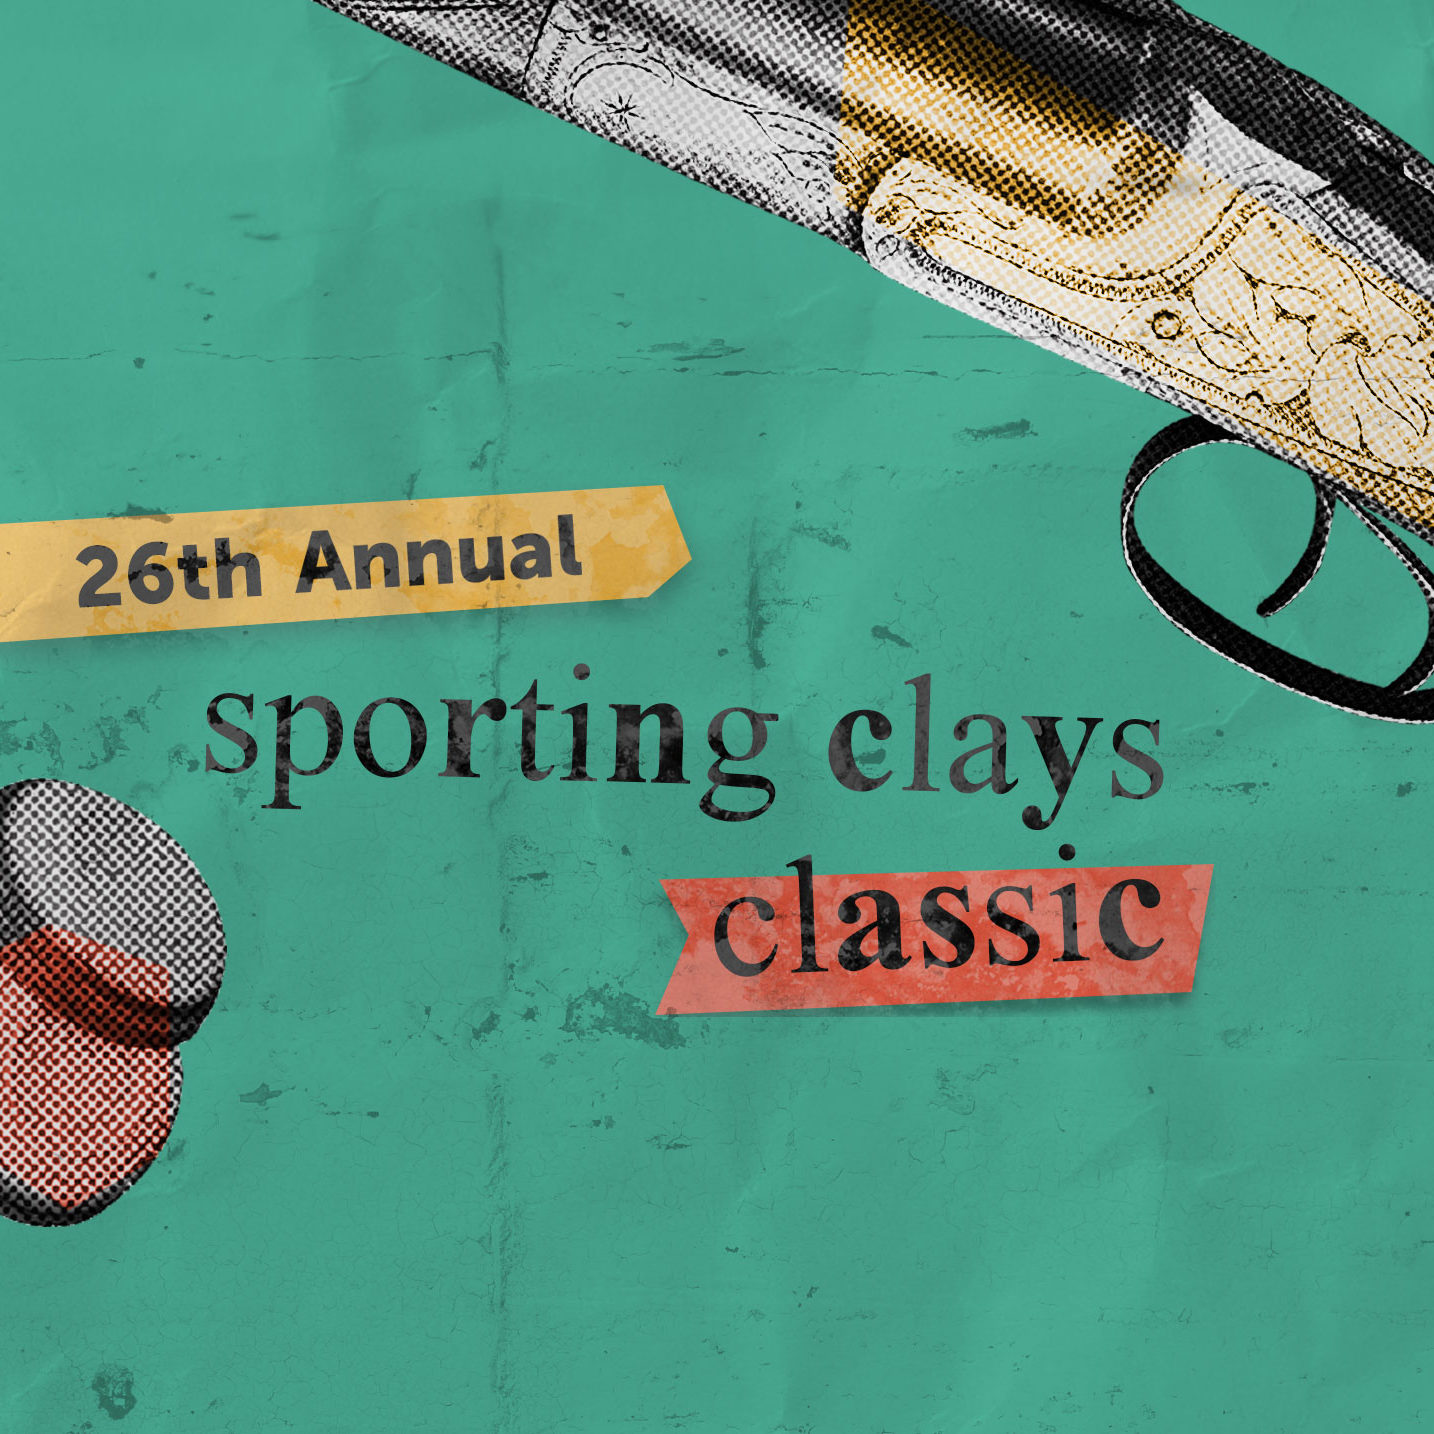 26th Annual Sporting Clays Classic image